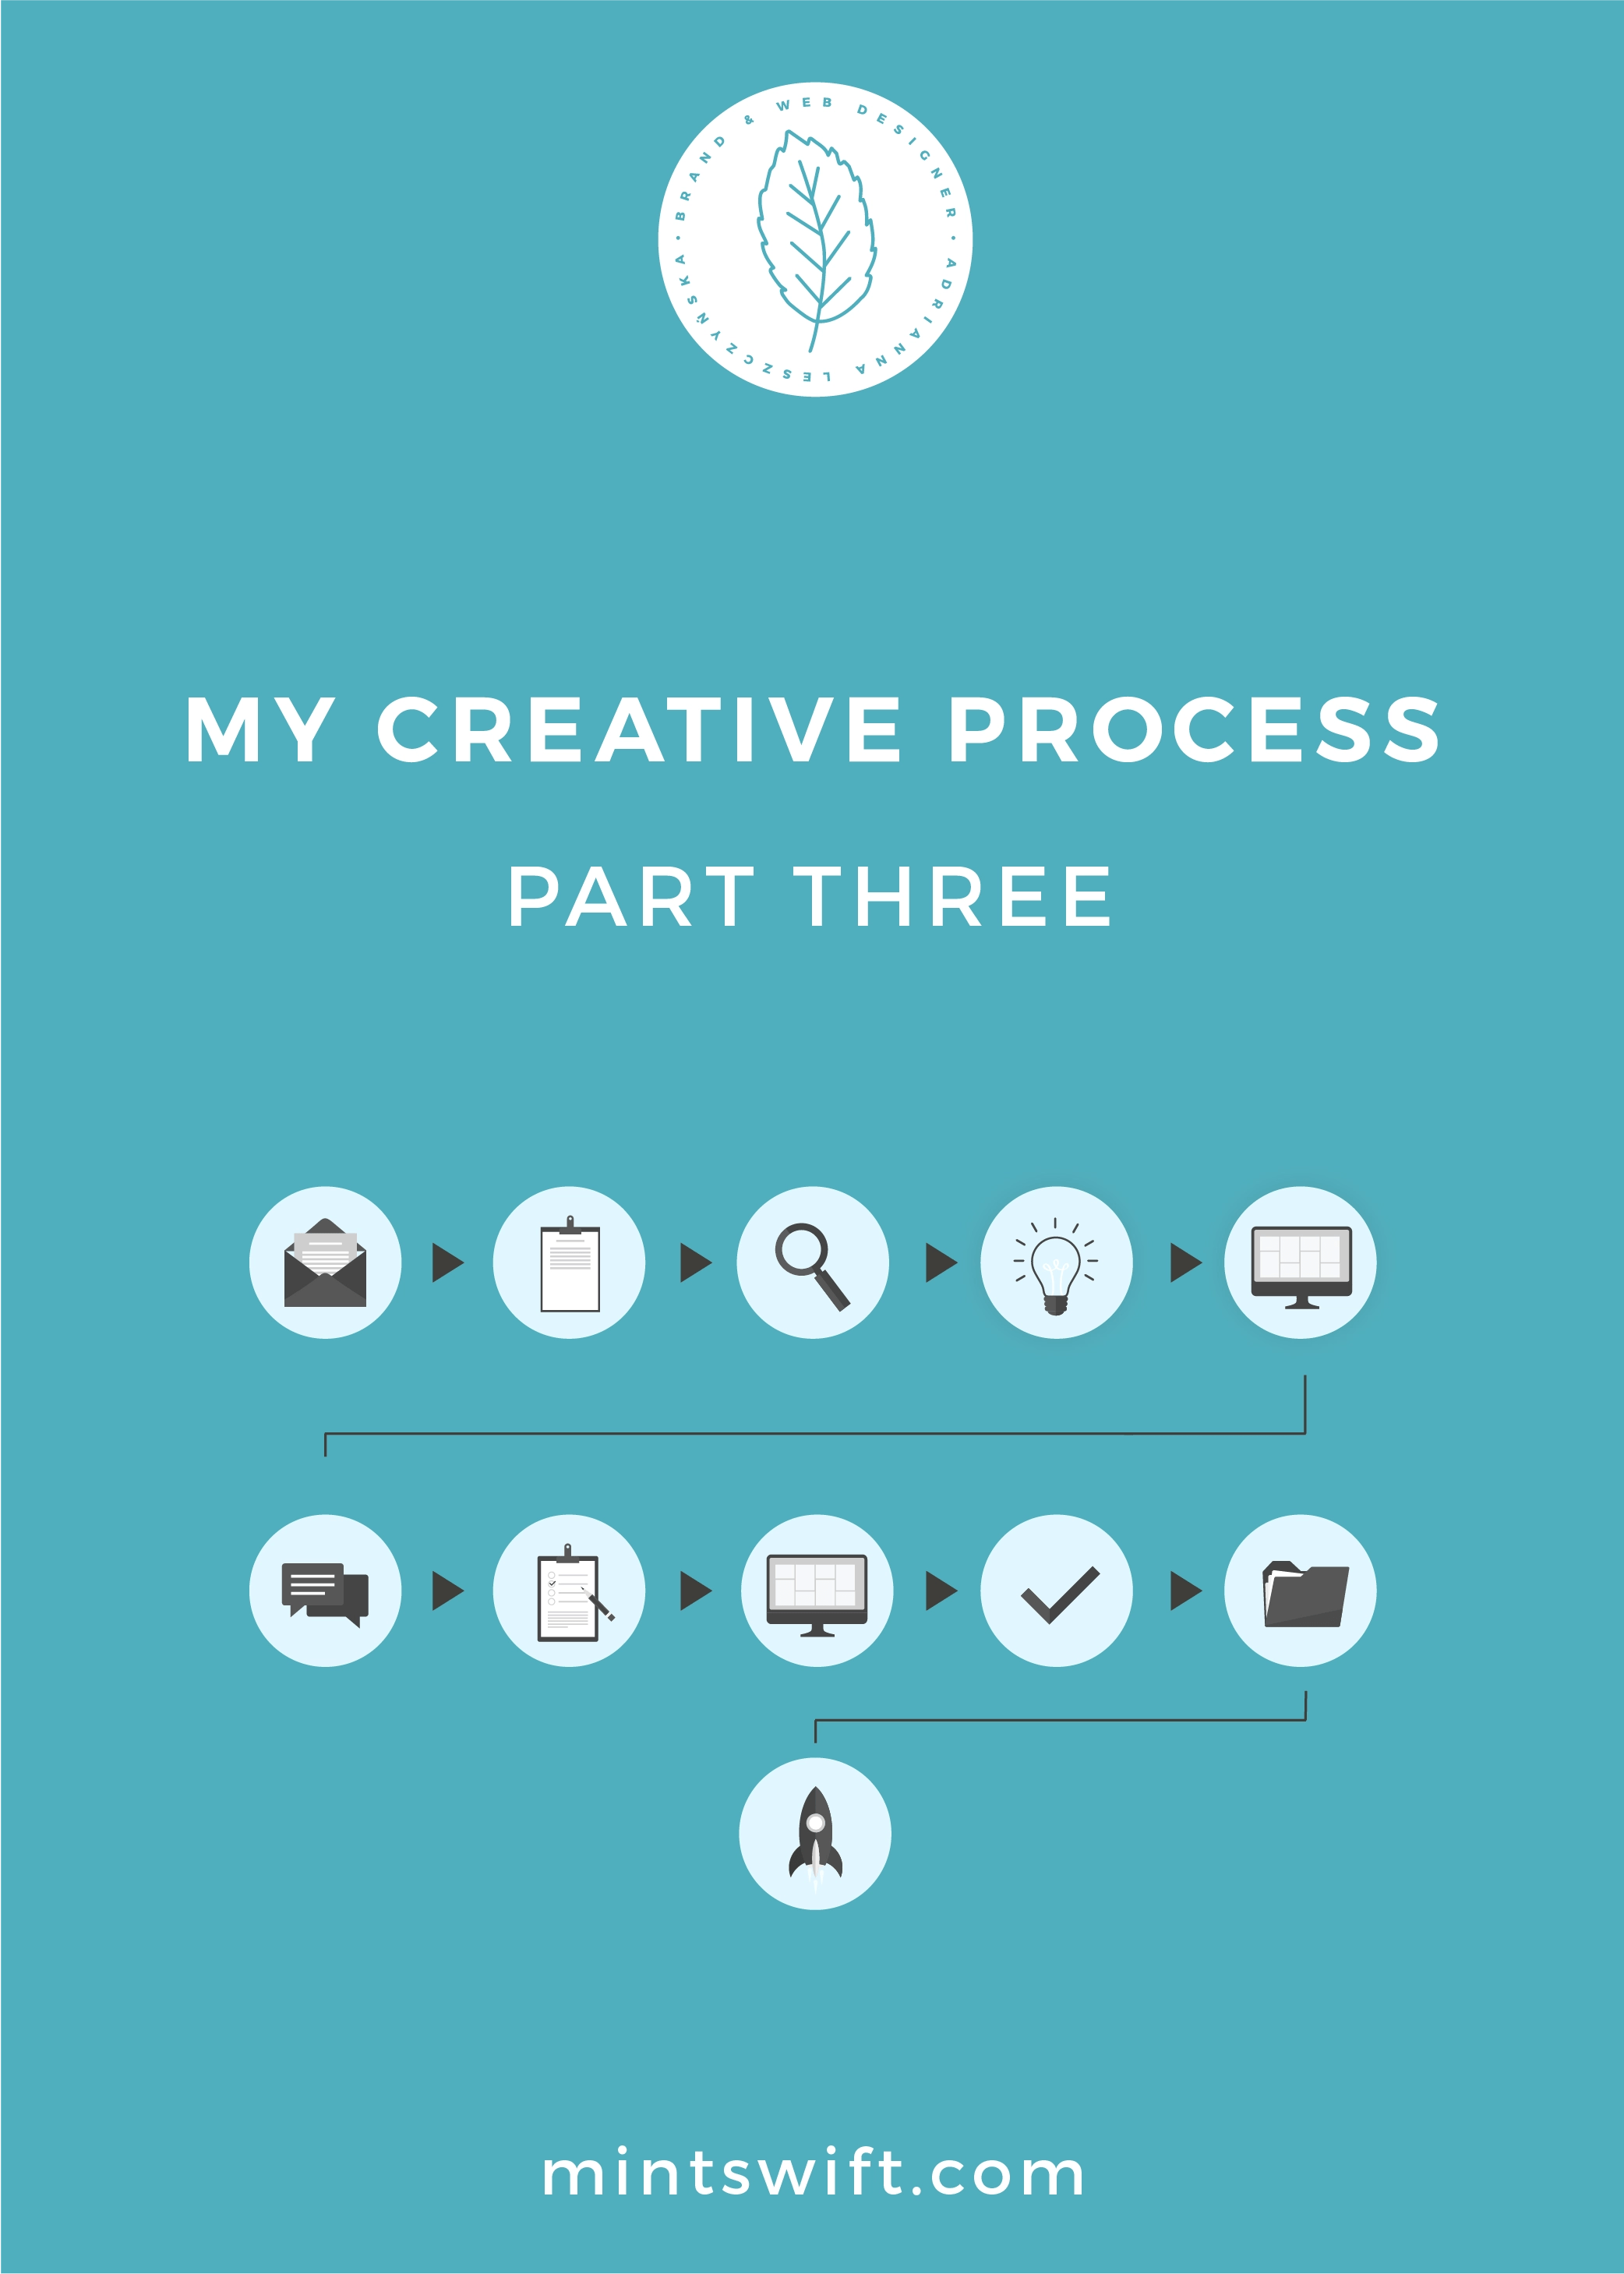 My Creative Process Part Three - MintSwift